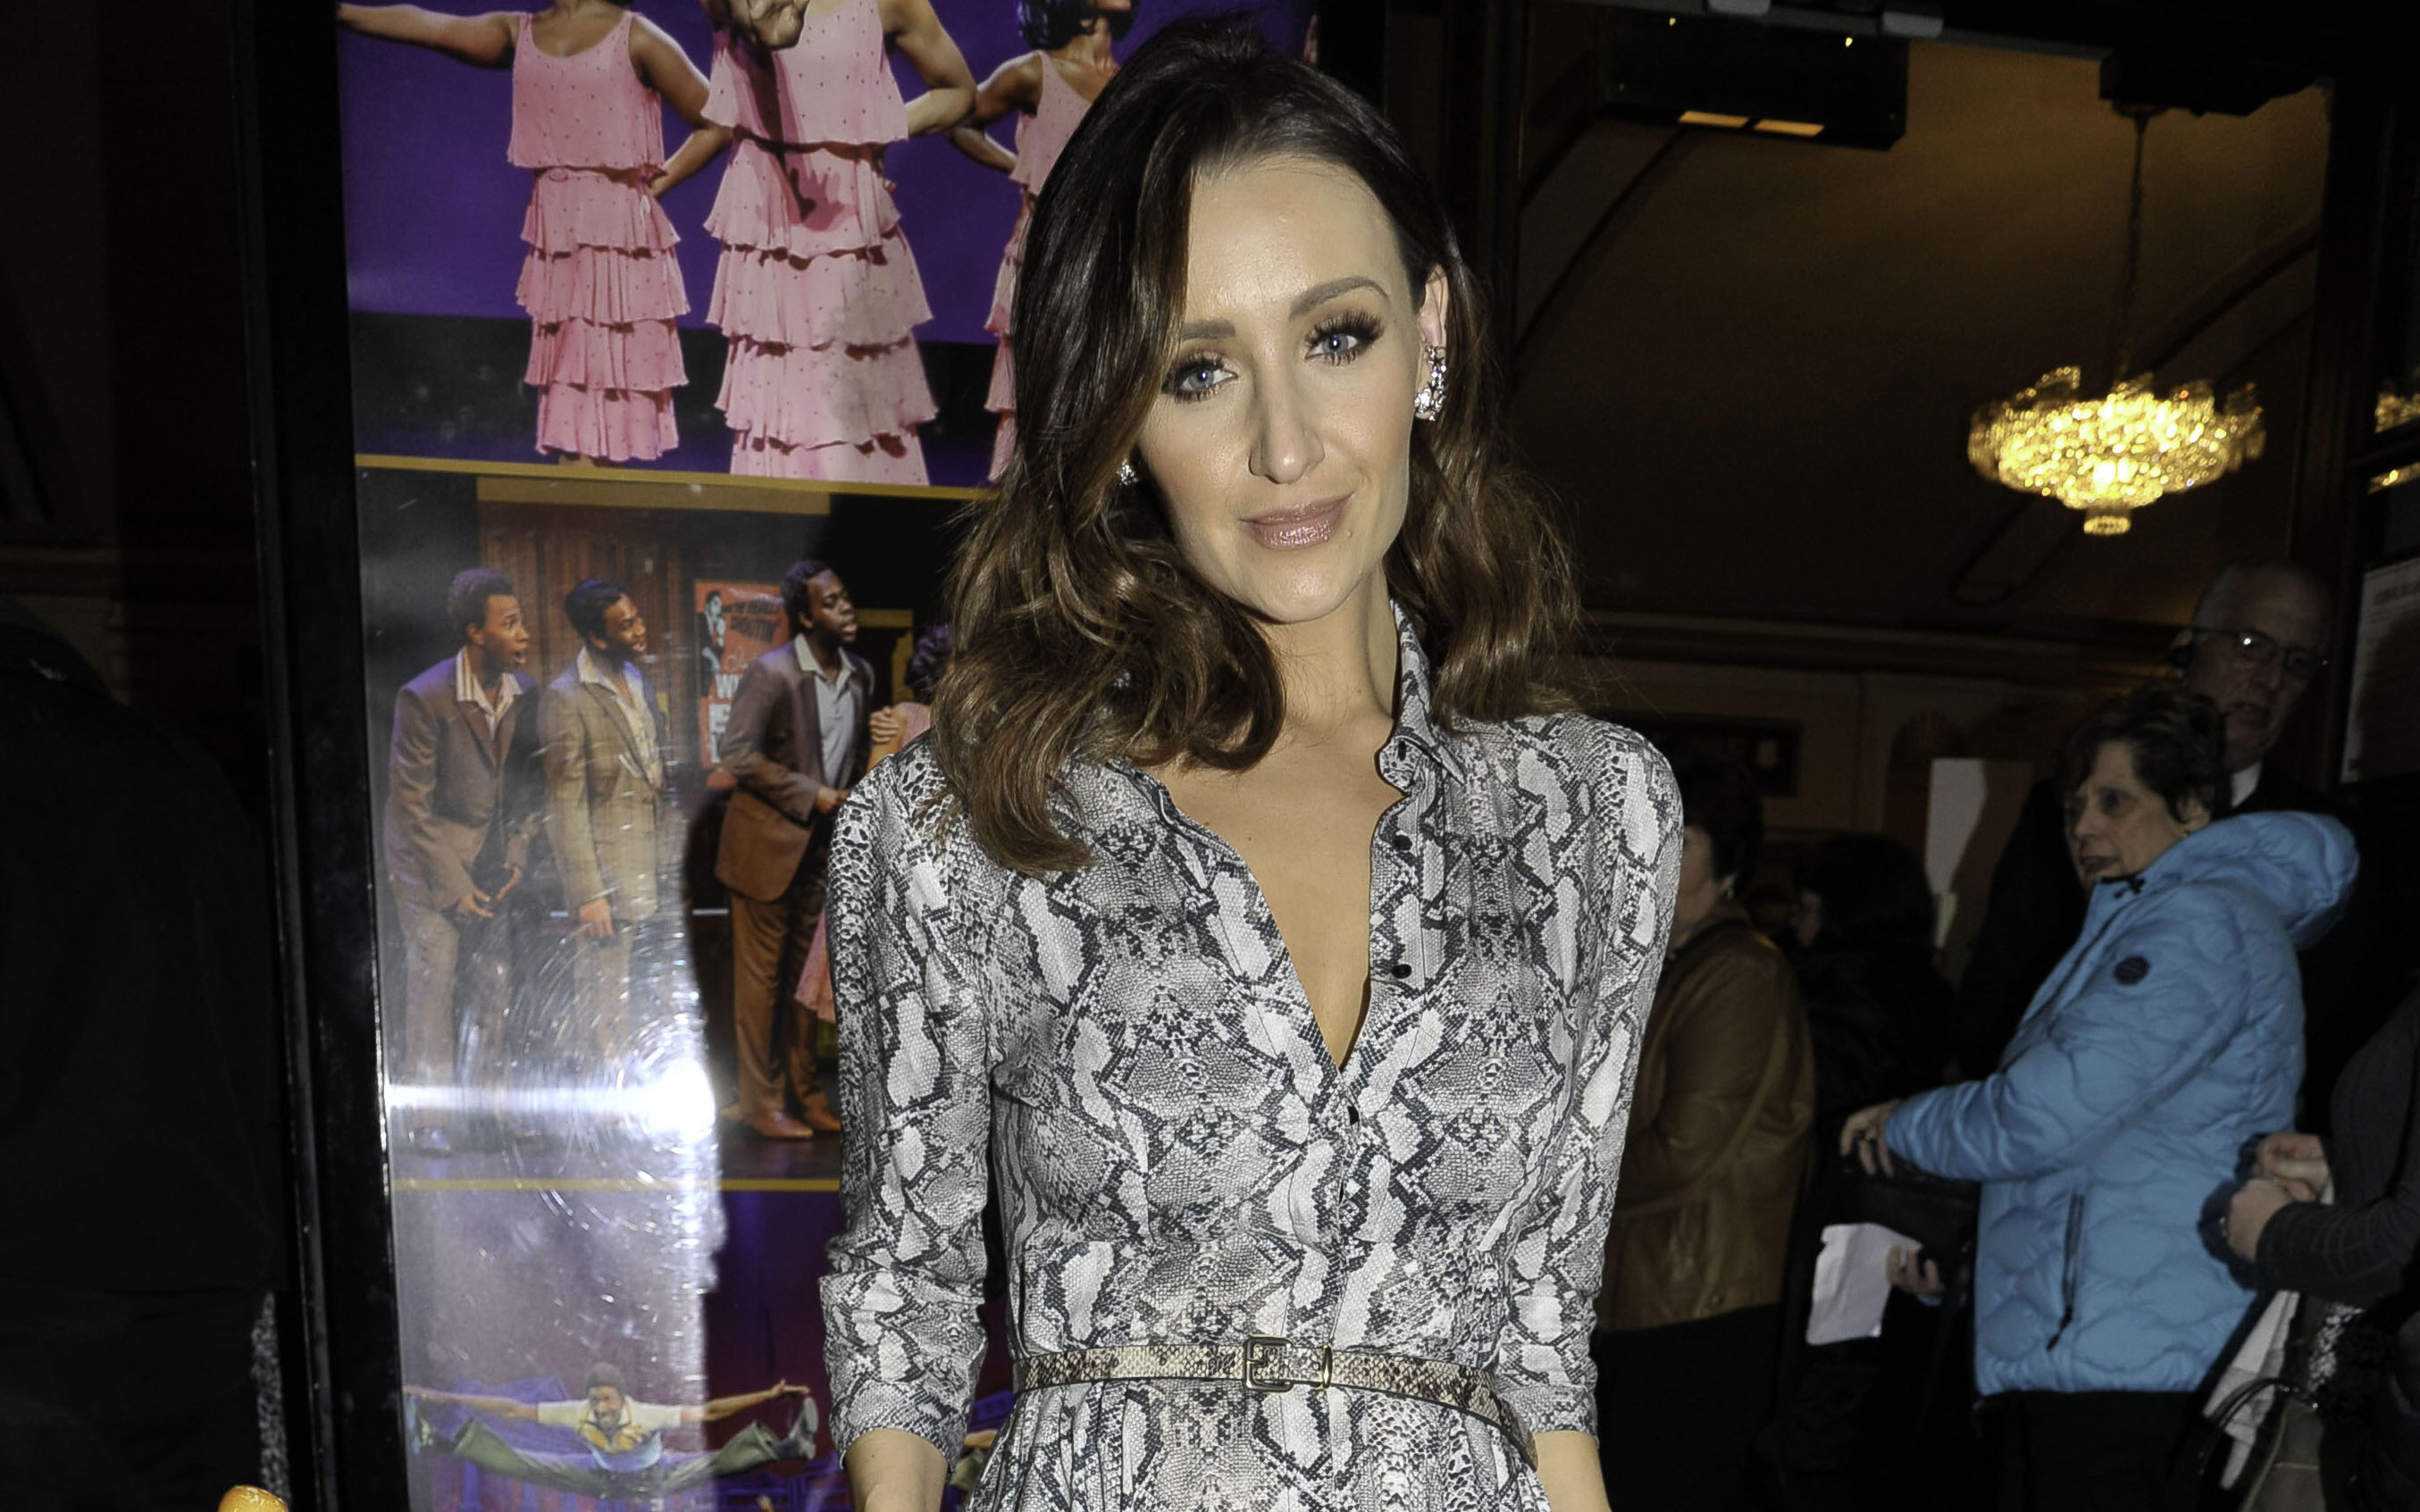 Strictly Come Dancing: Bookies name Catherine Tyldesley joint-favourite to win in 2019